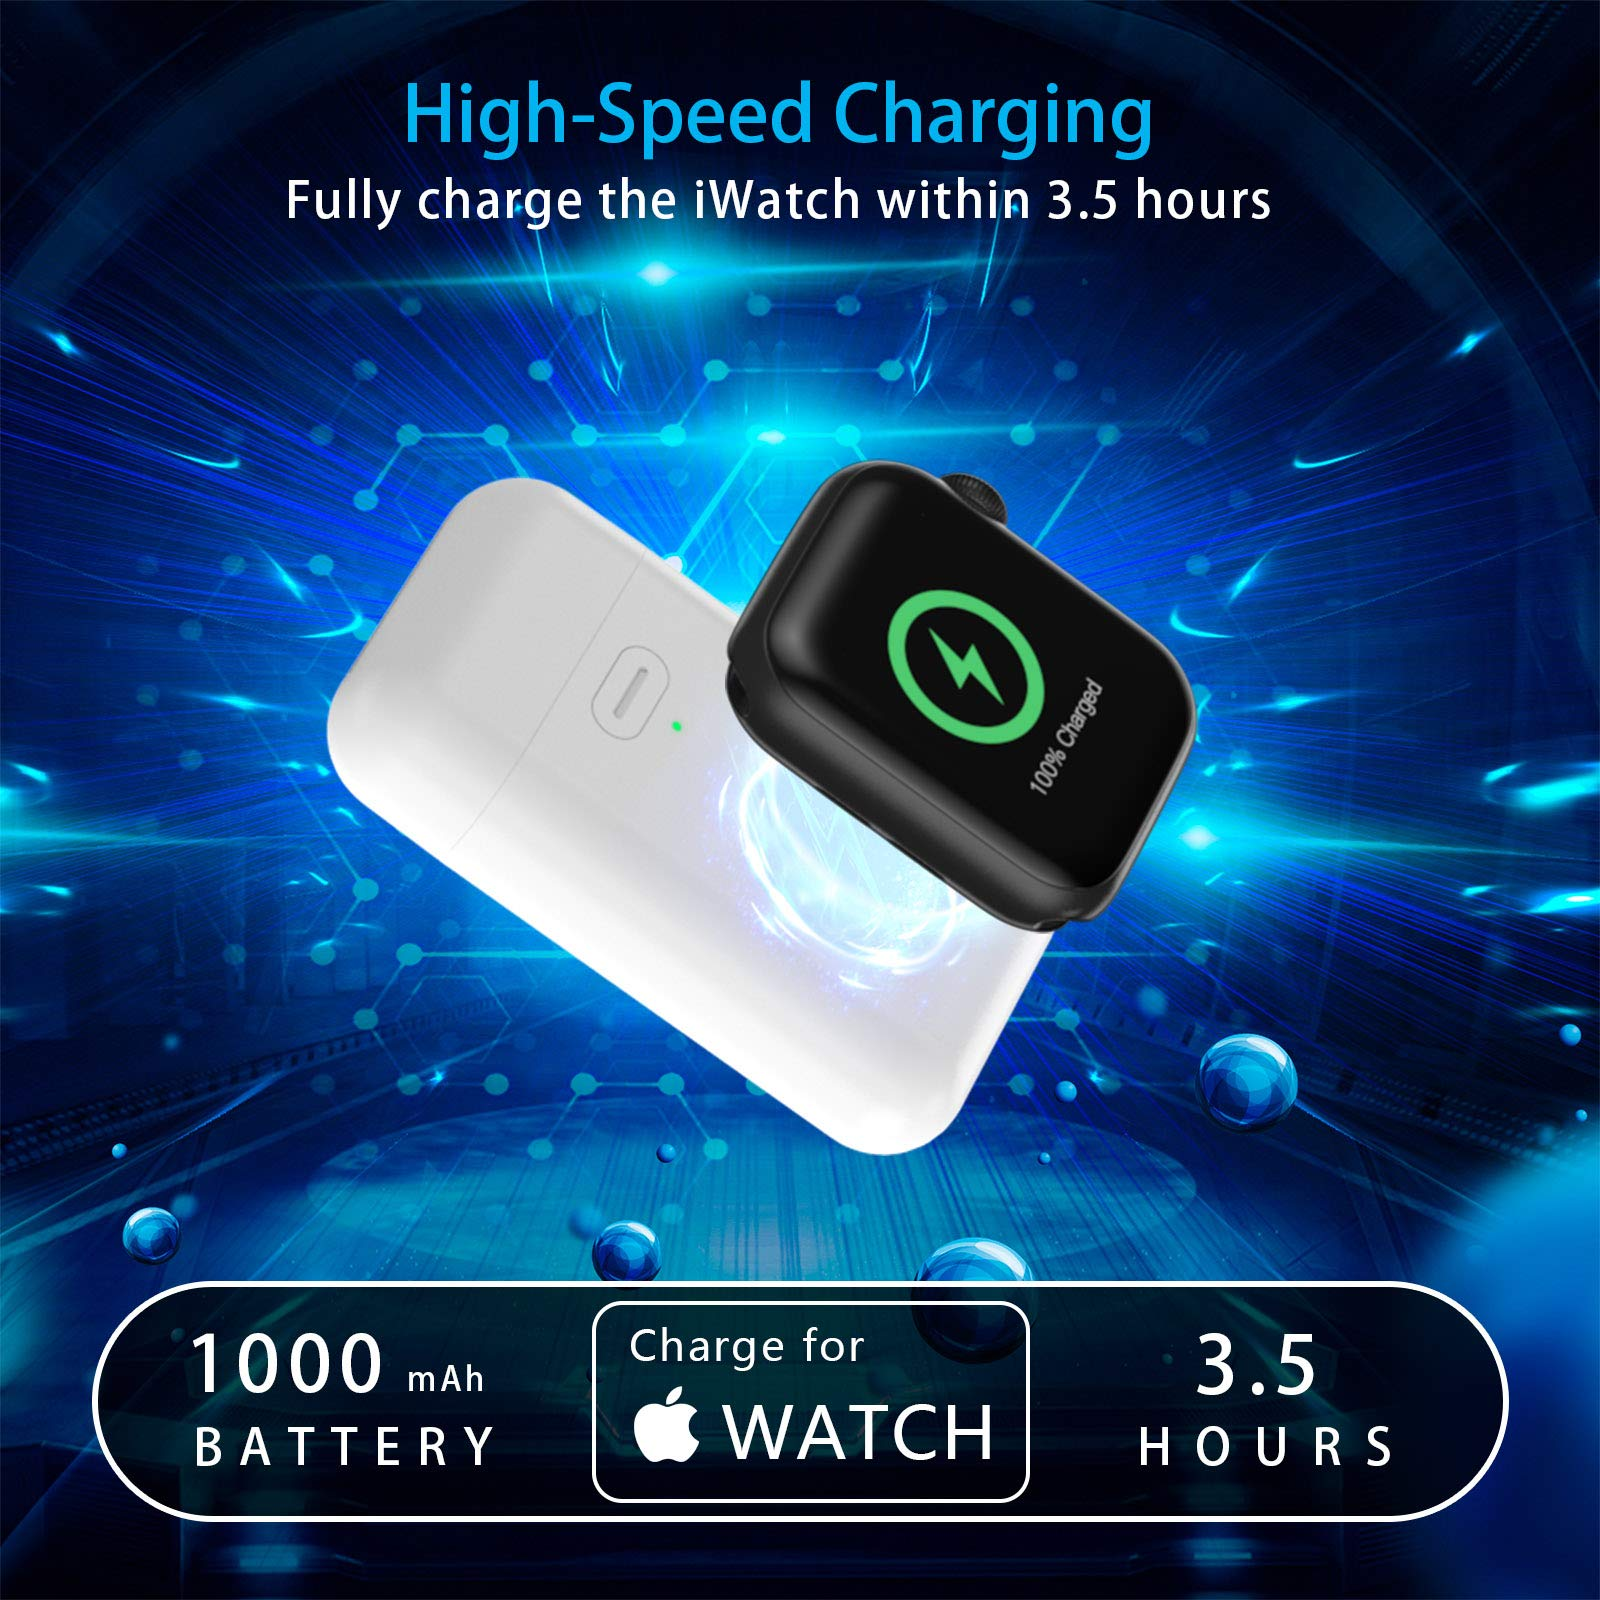 SKNONO Wireless Charger for Apple Watch, Portable Travel Power Bank Charger for iWatch 5/4/3/2/1, Built-in 1000mAh Battery with USB Port【Upgraded Version】